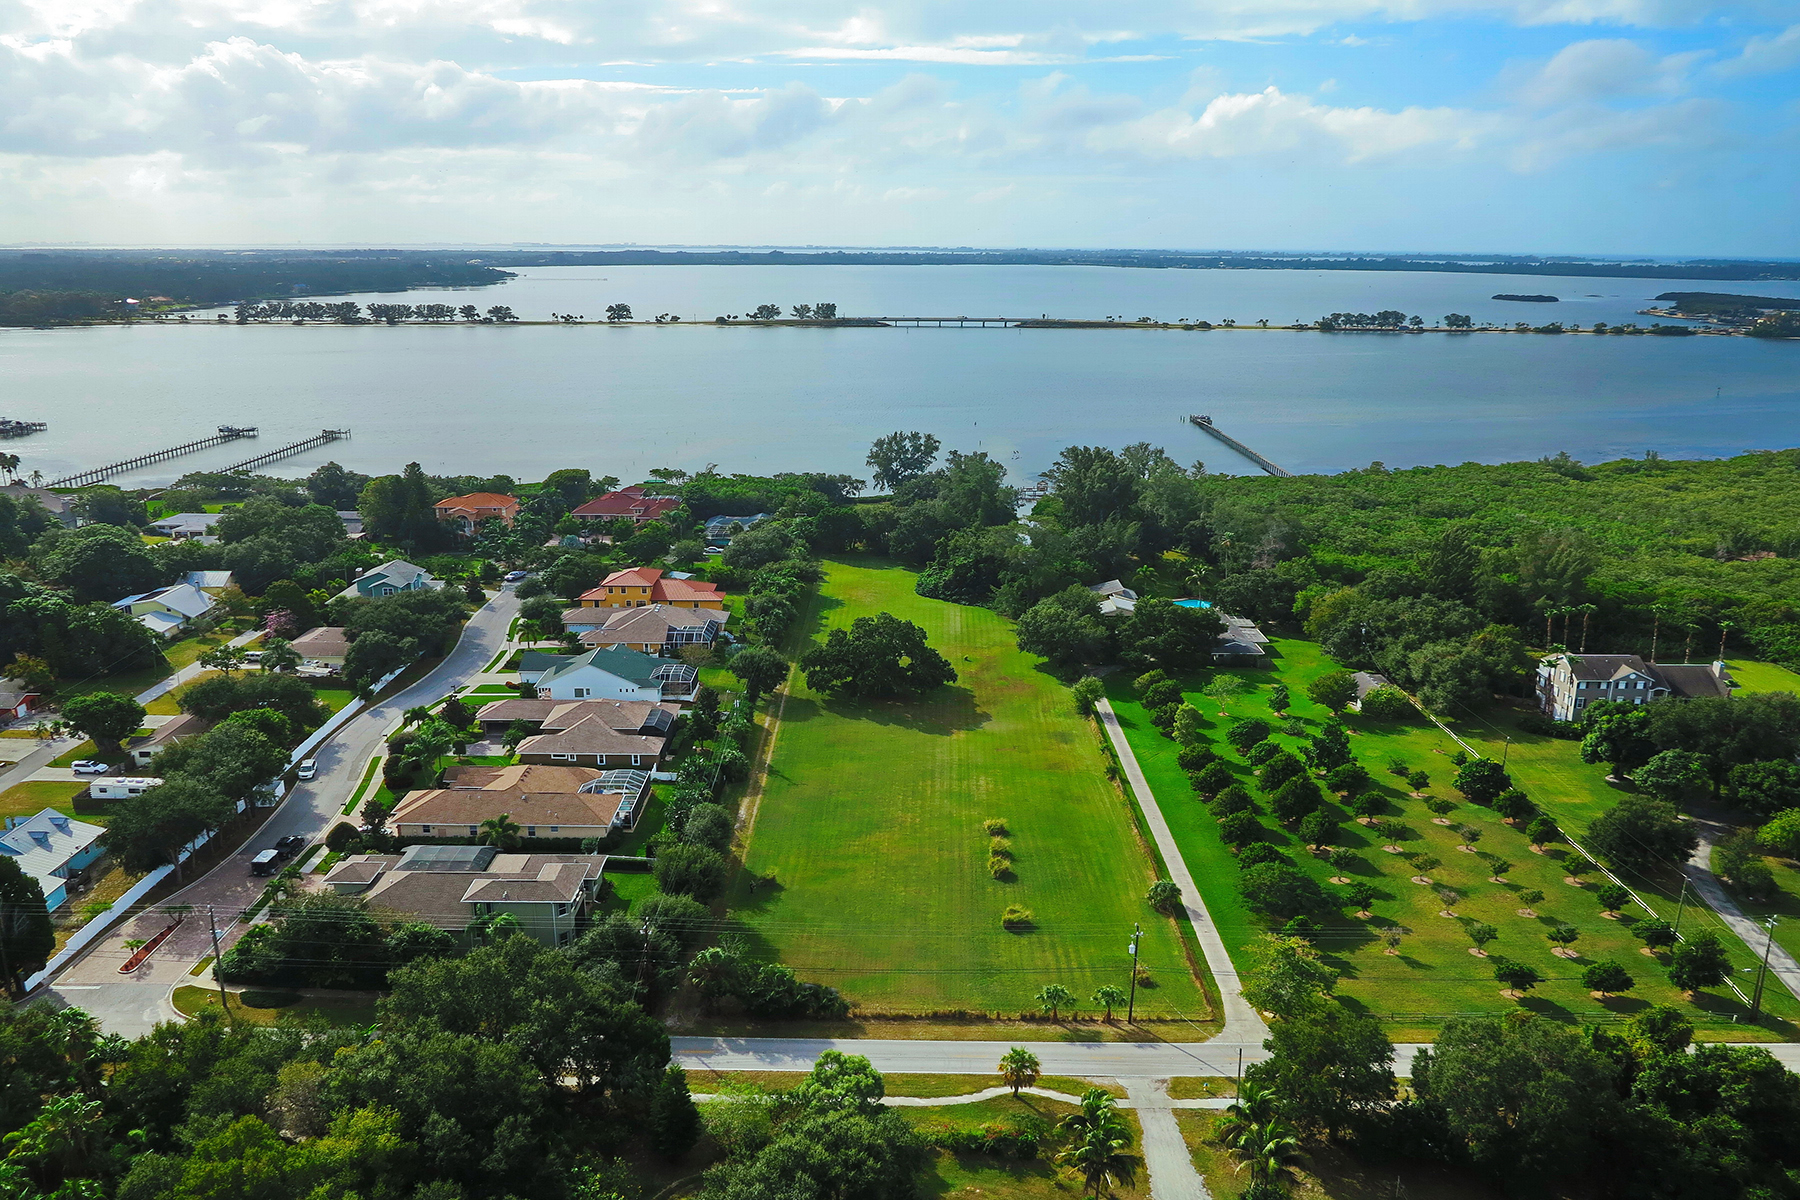 Terreno por un Venta en WEST BRADENTON 8921 9th Ave NW 0 Bradenton, Florida, 34209 Estados Unidos